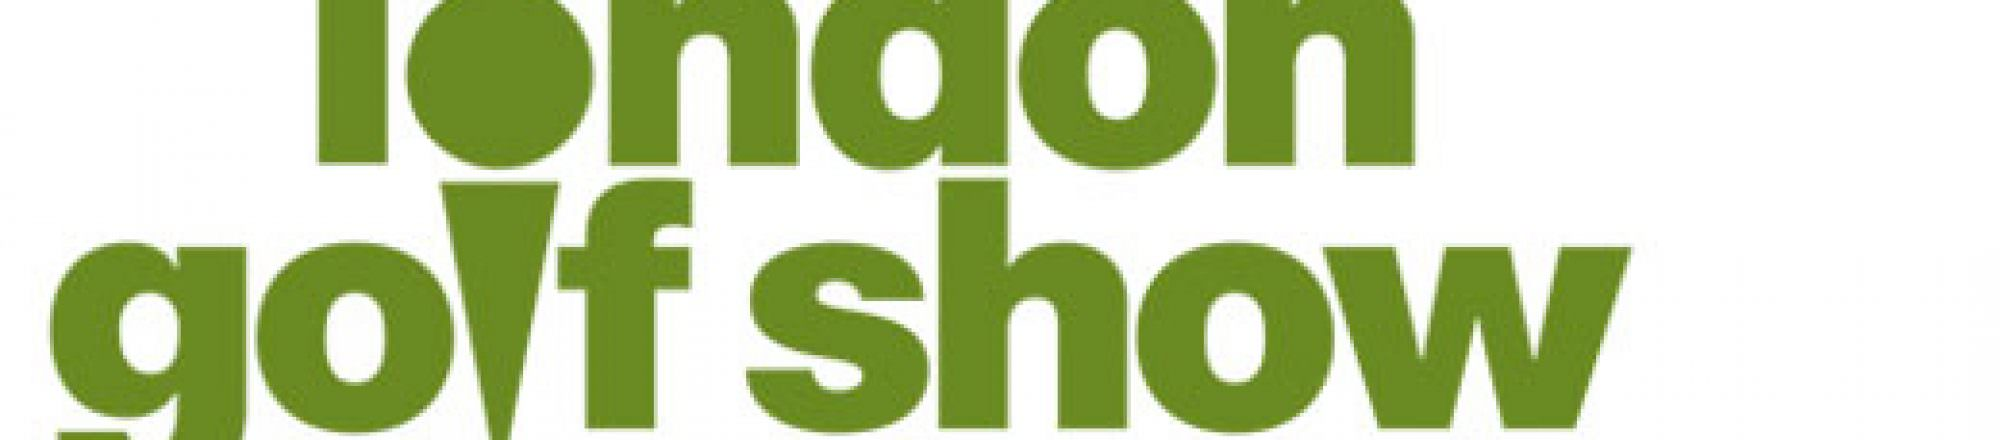 Get half price tickets to the London Golf Show with NCG